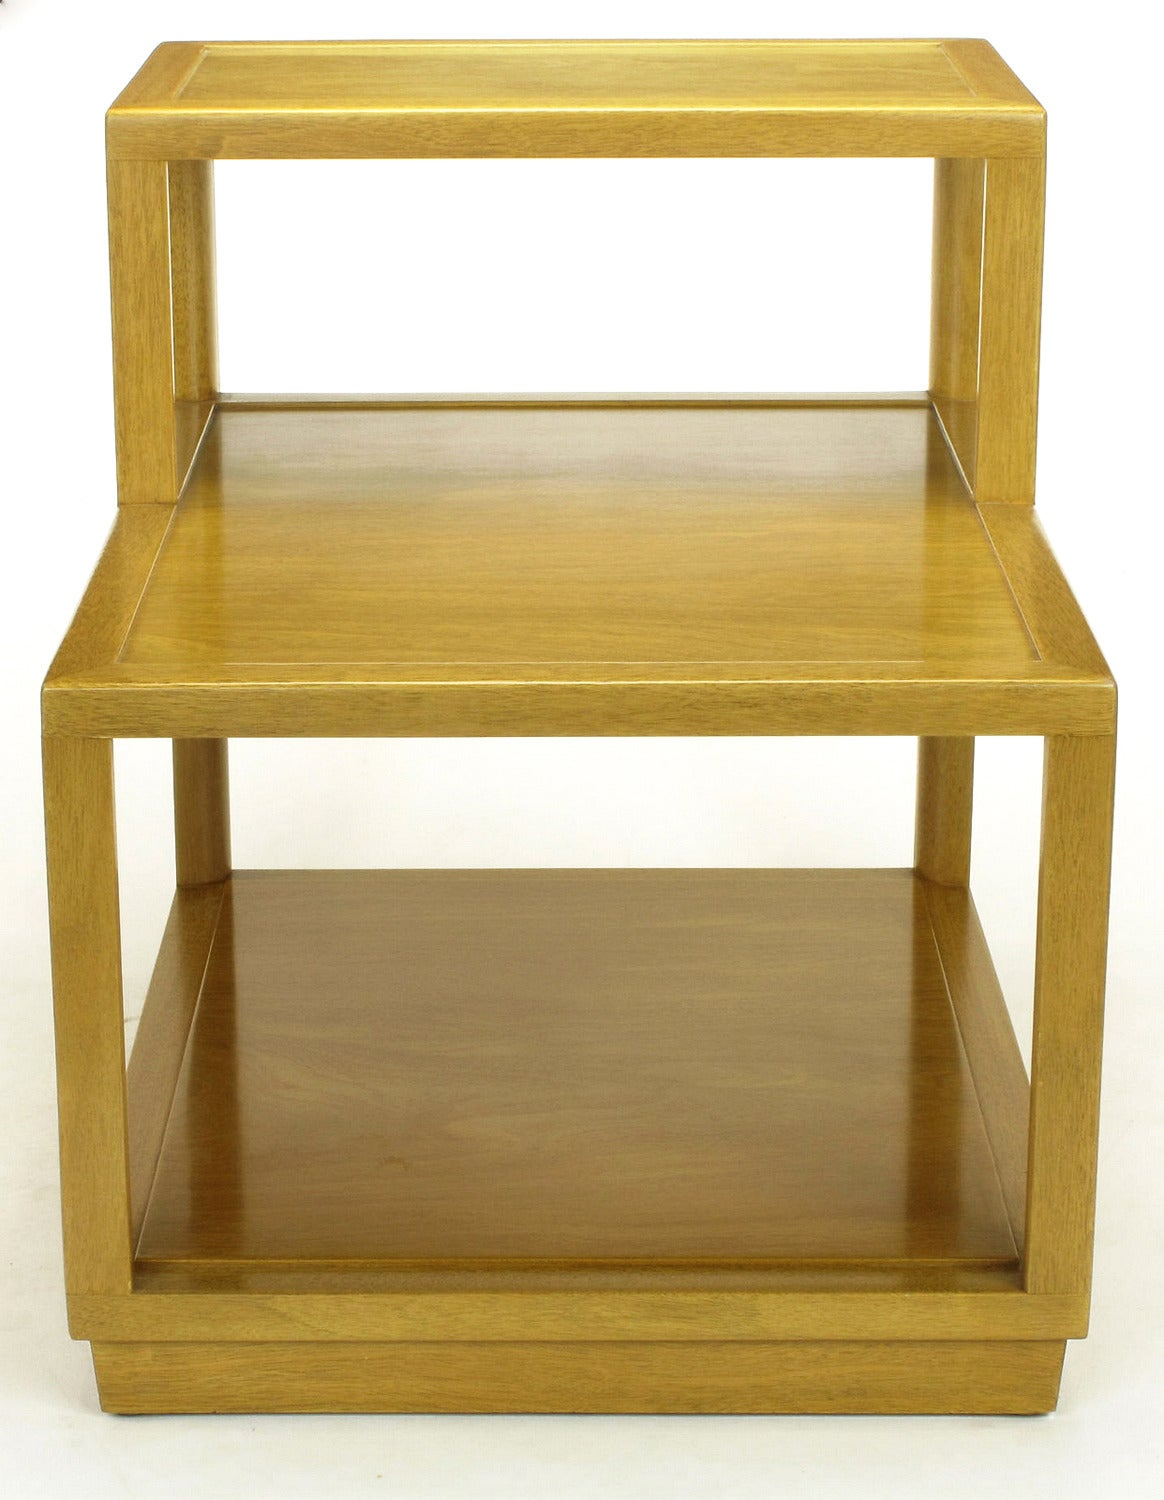 Edward Wormley for Dunbar Minimalist design bleached mahogany tiered end table number 4976. Nicely grained woods with open design and expert craftsmanship. See our listings for the matching corner table. Comes with custom flannel cover. First tier